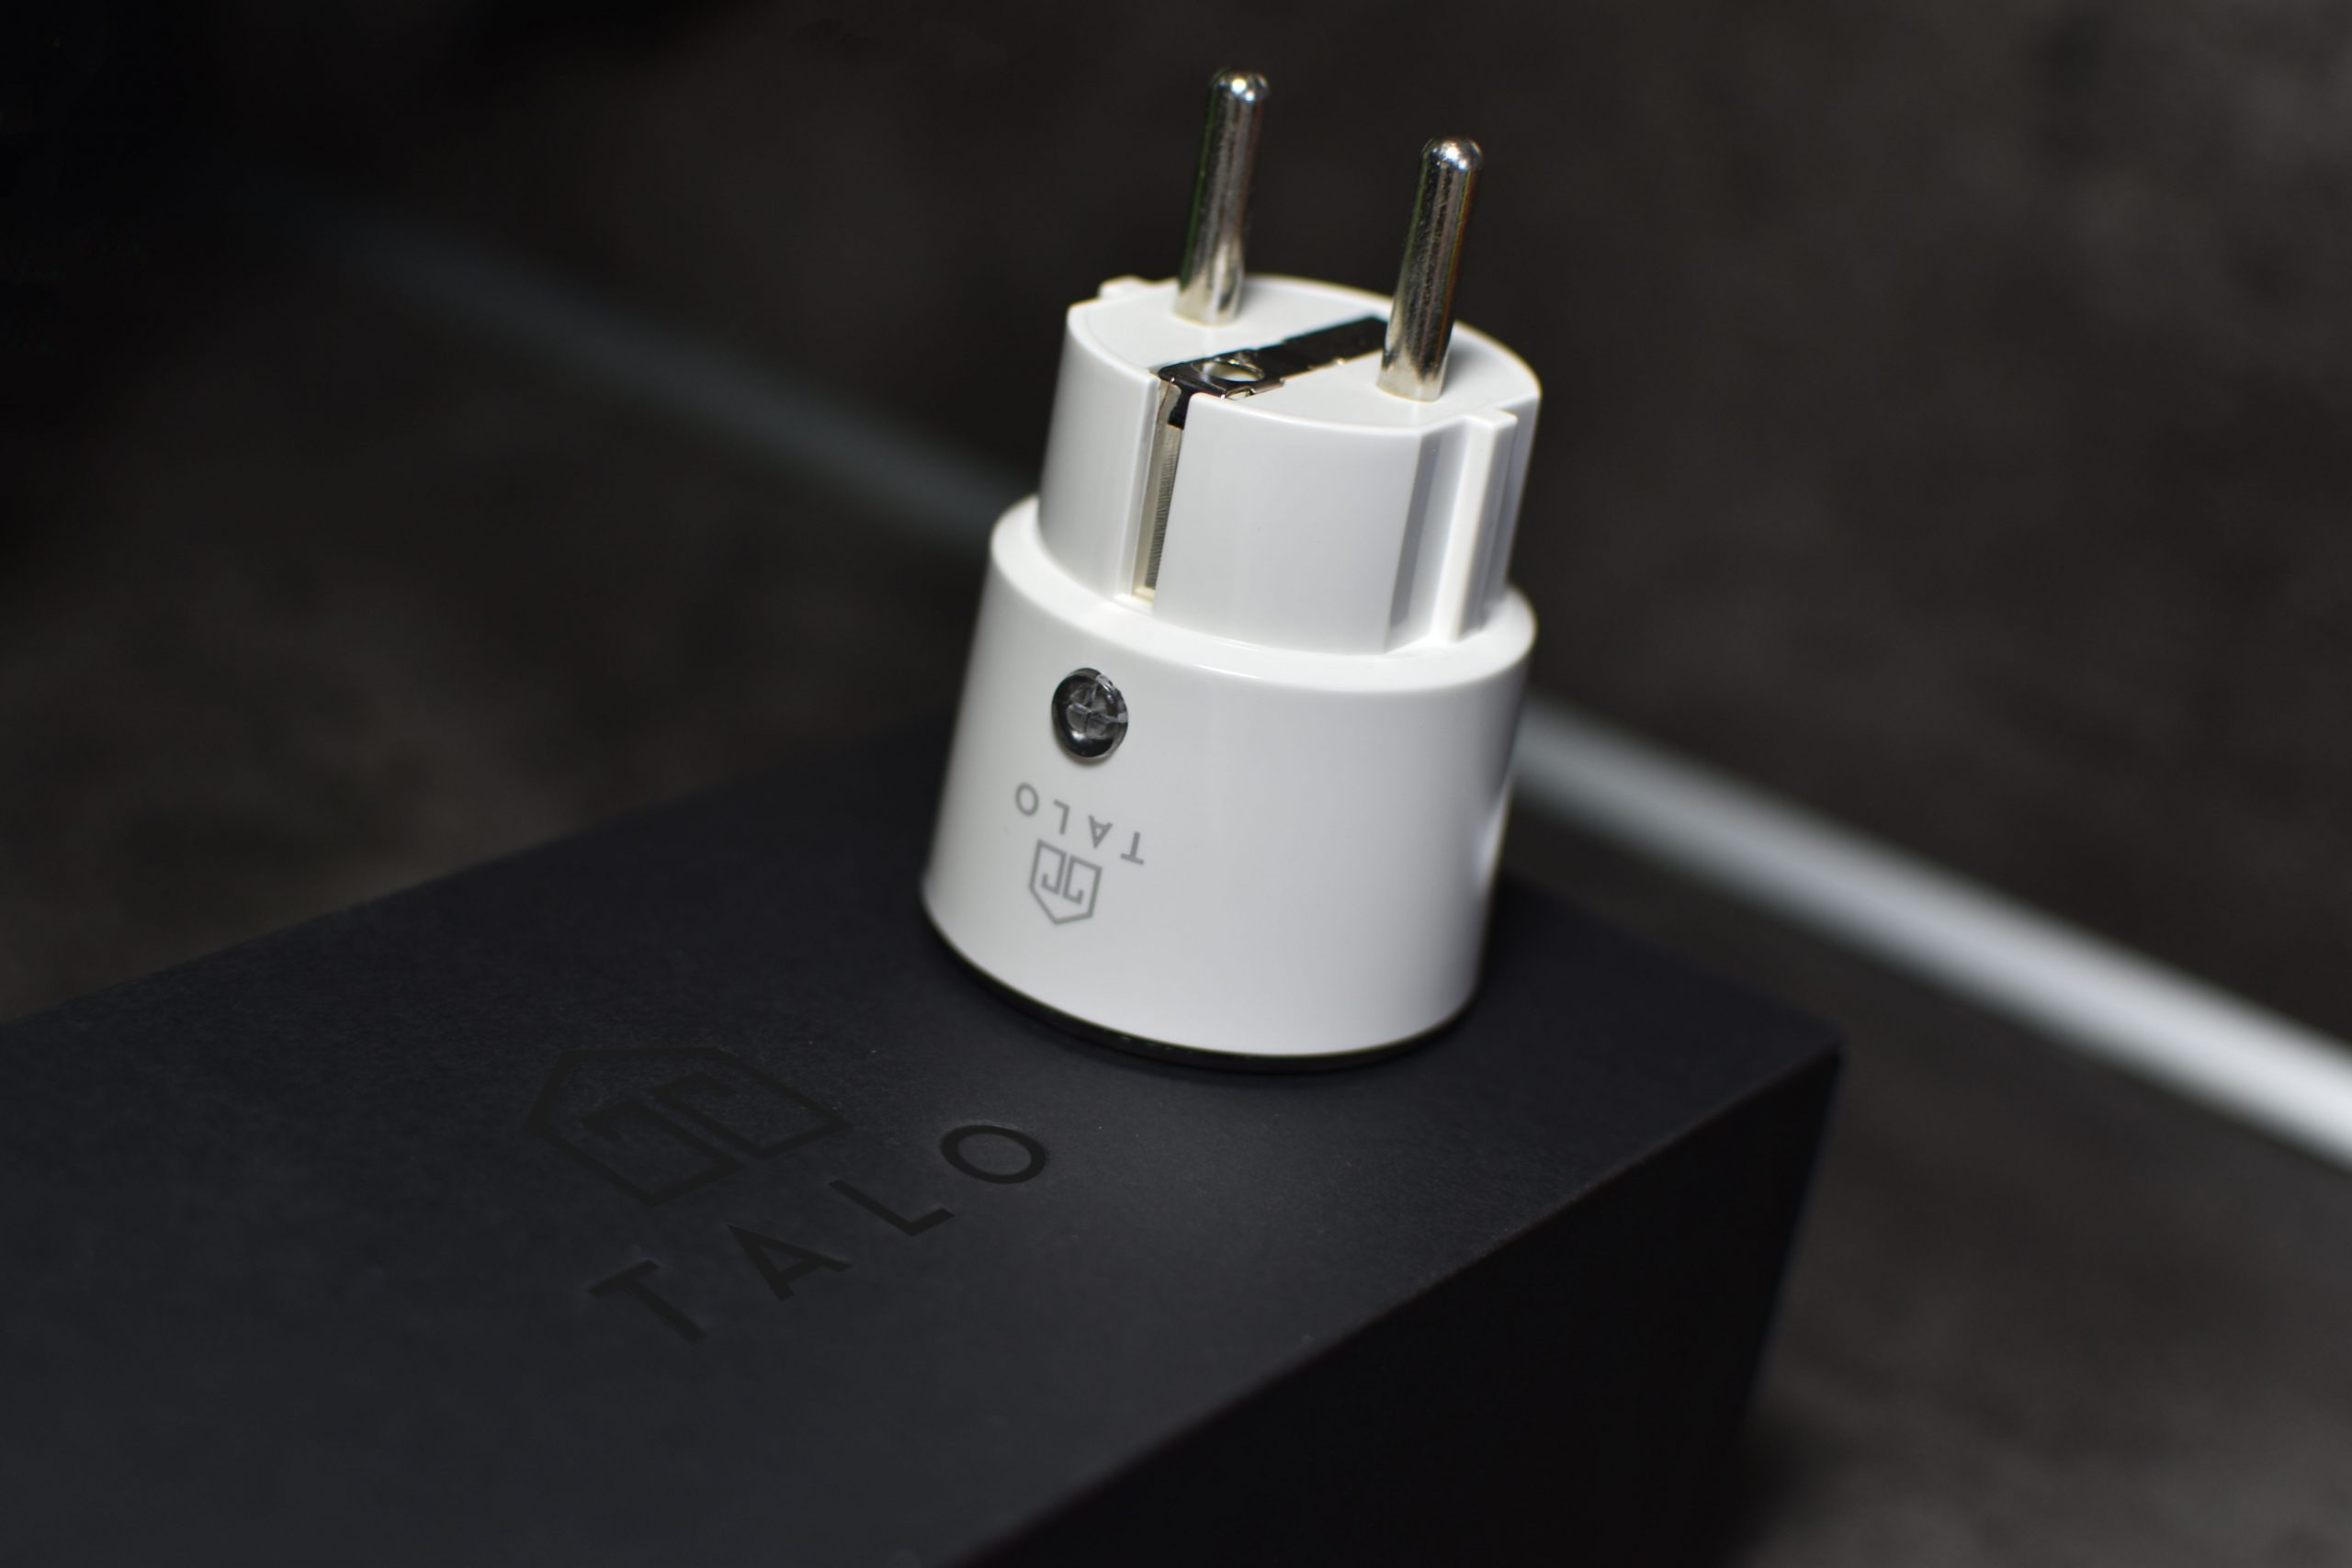 Talo smart plug and giftbox